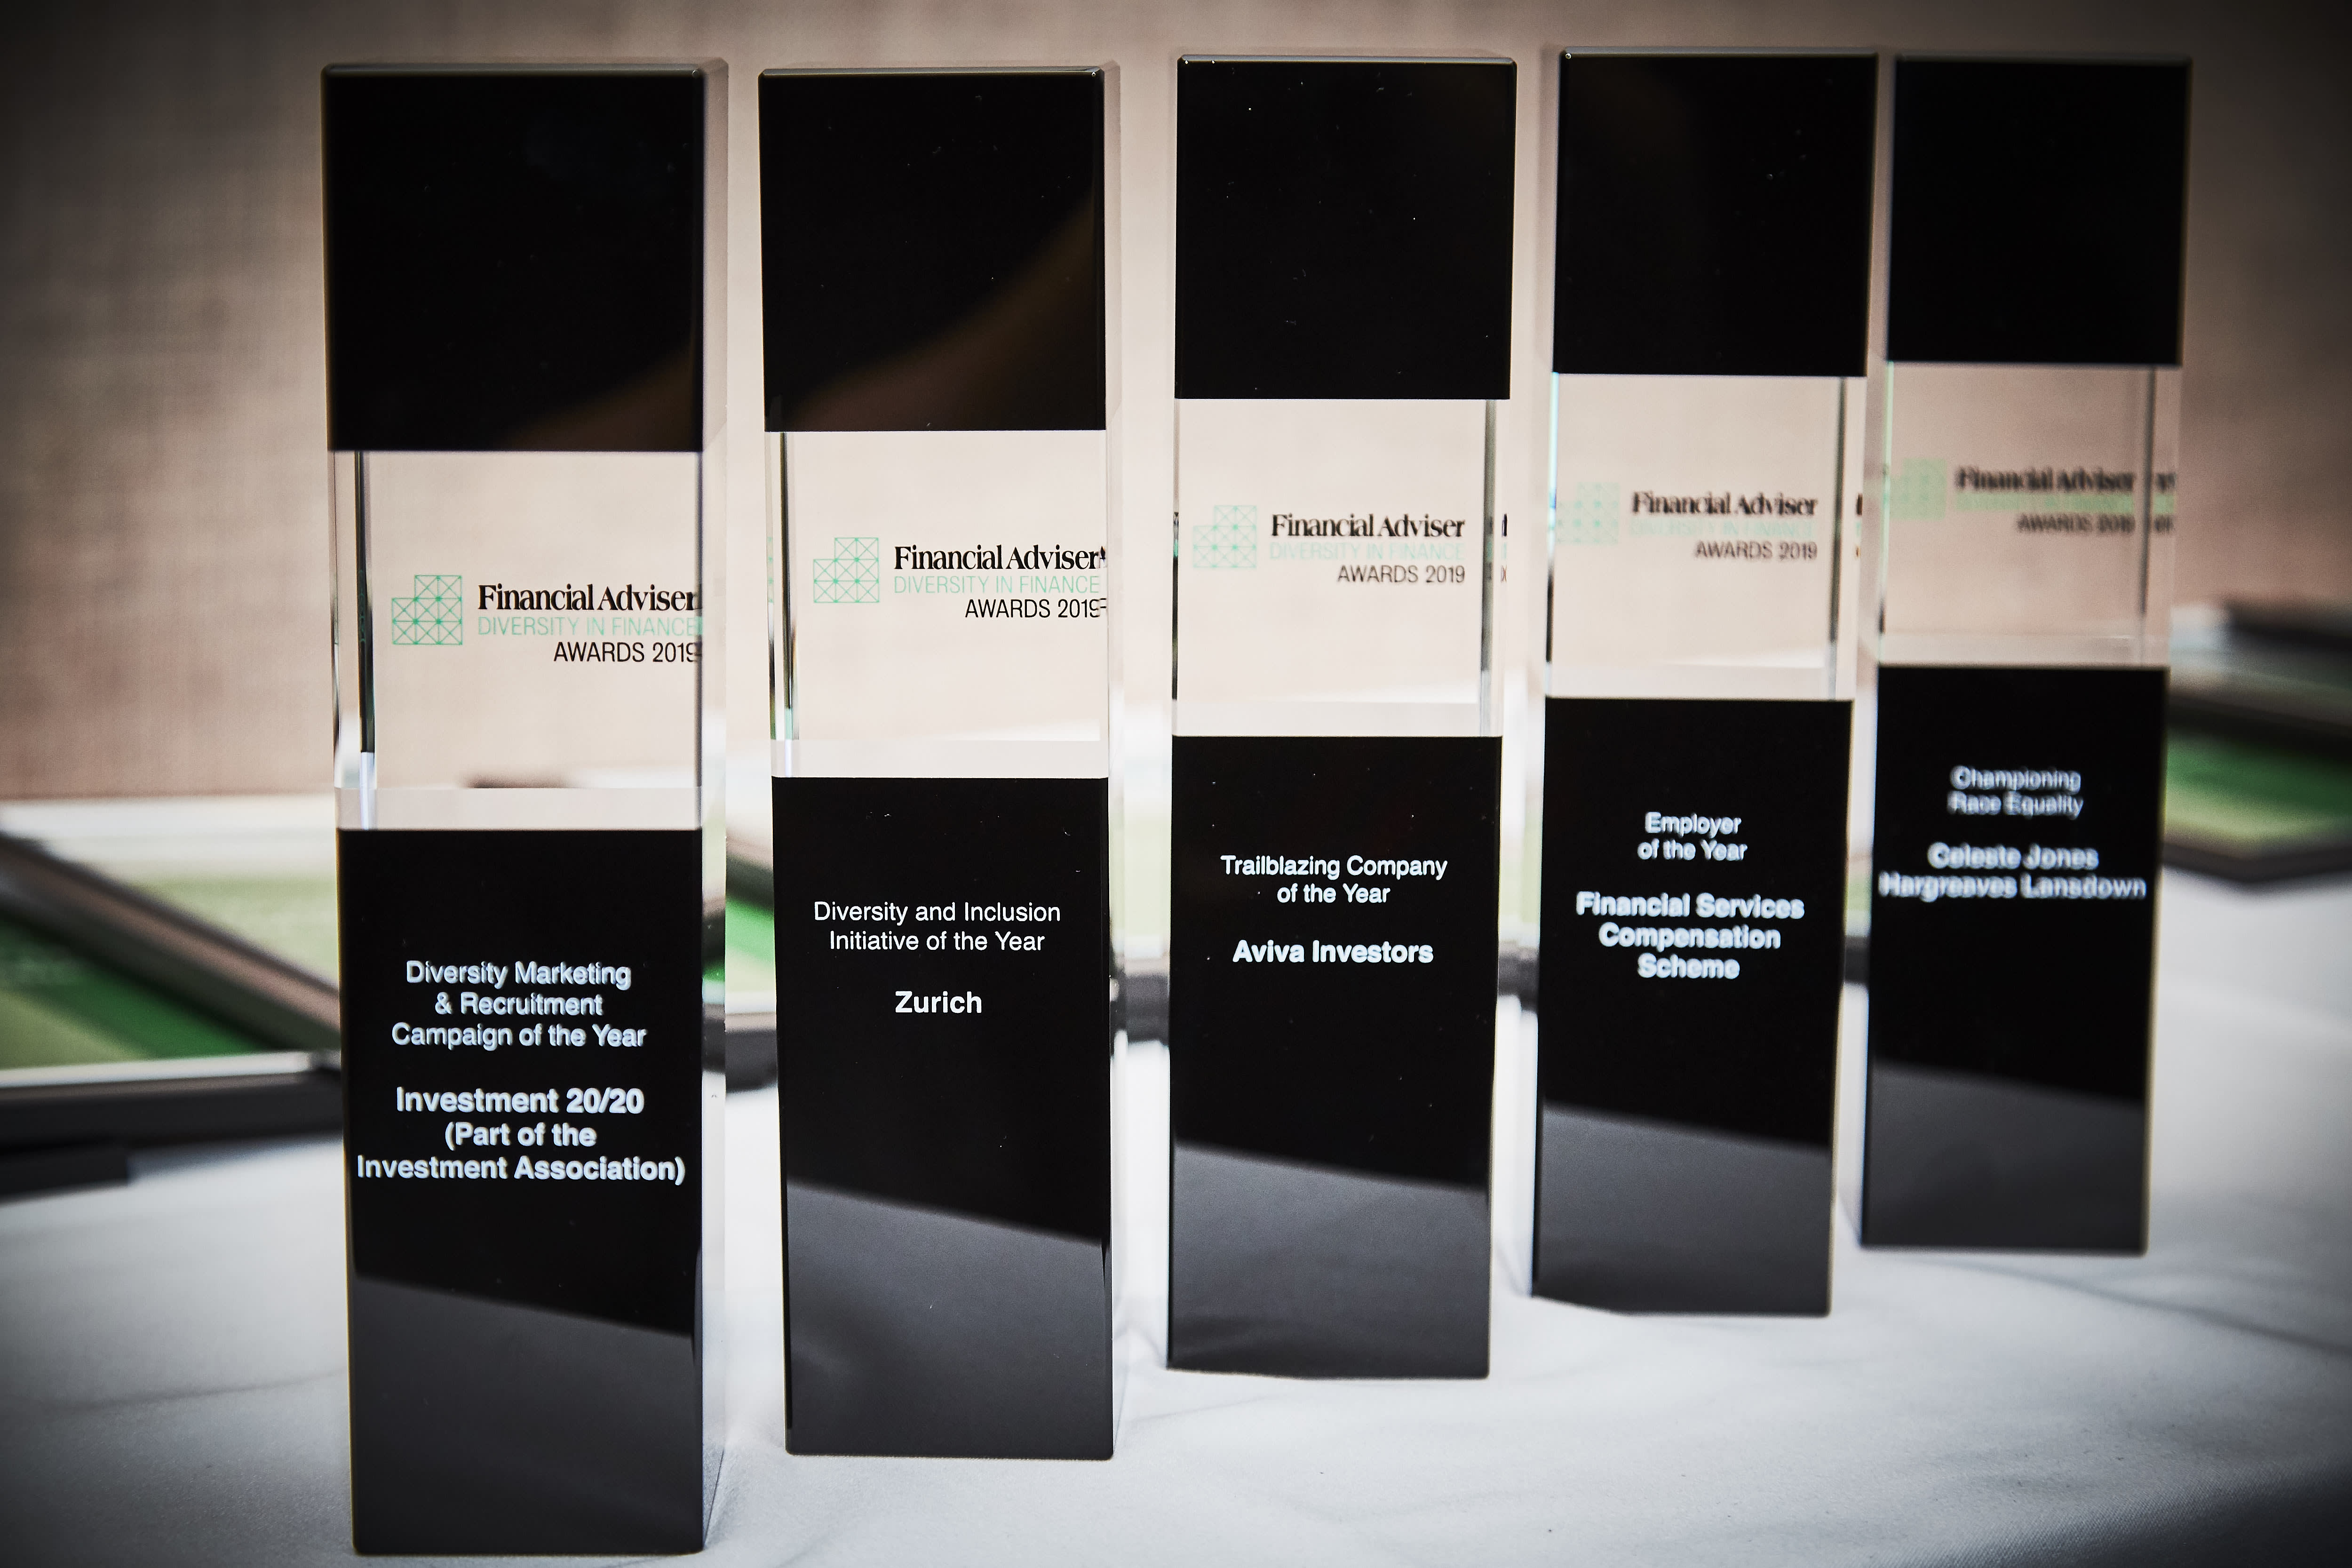 Diversity in Finance Awards - who's on the shortlist?